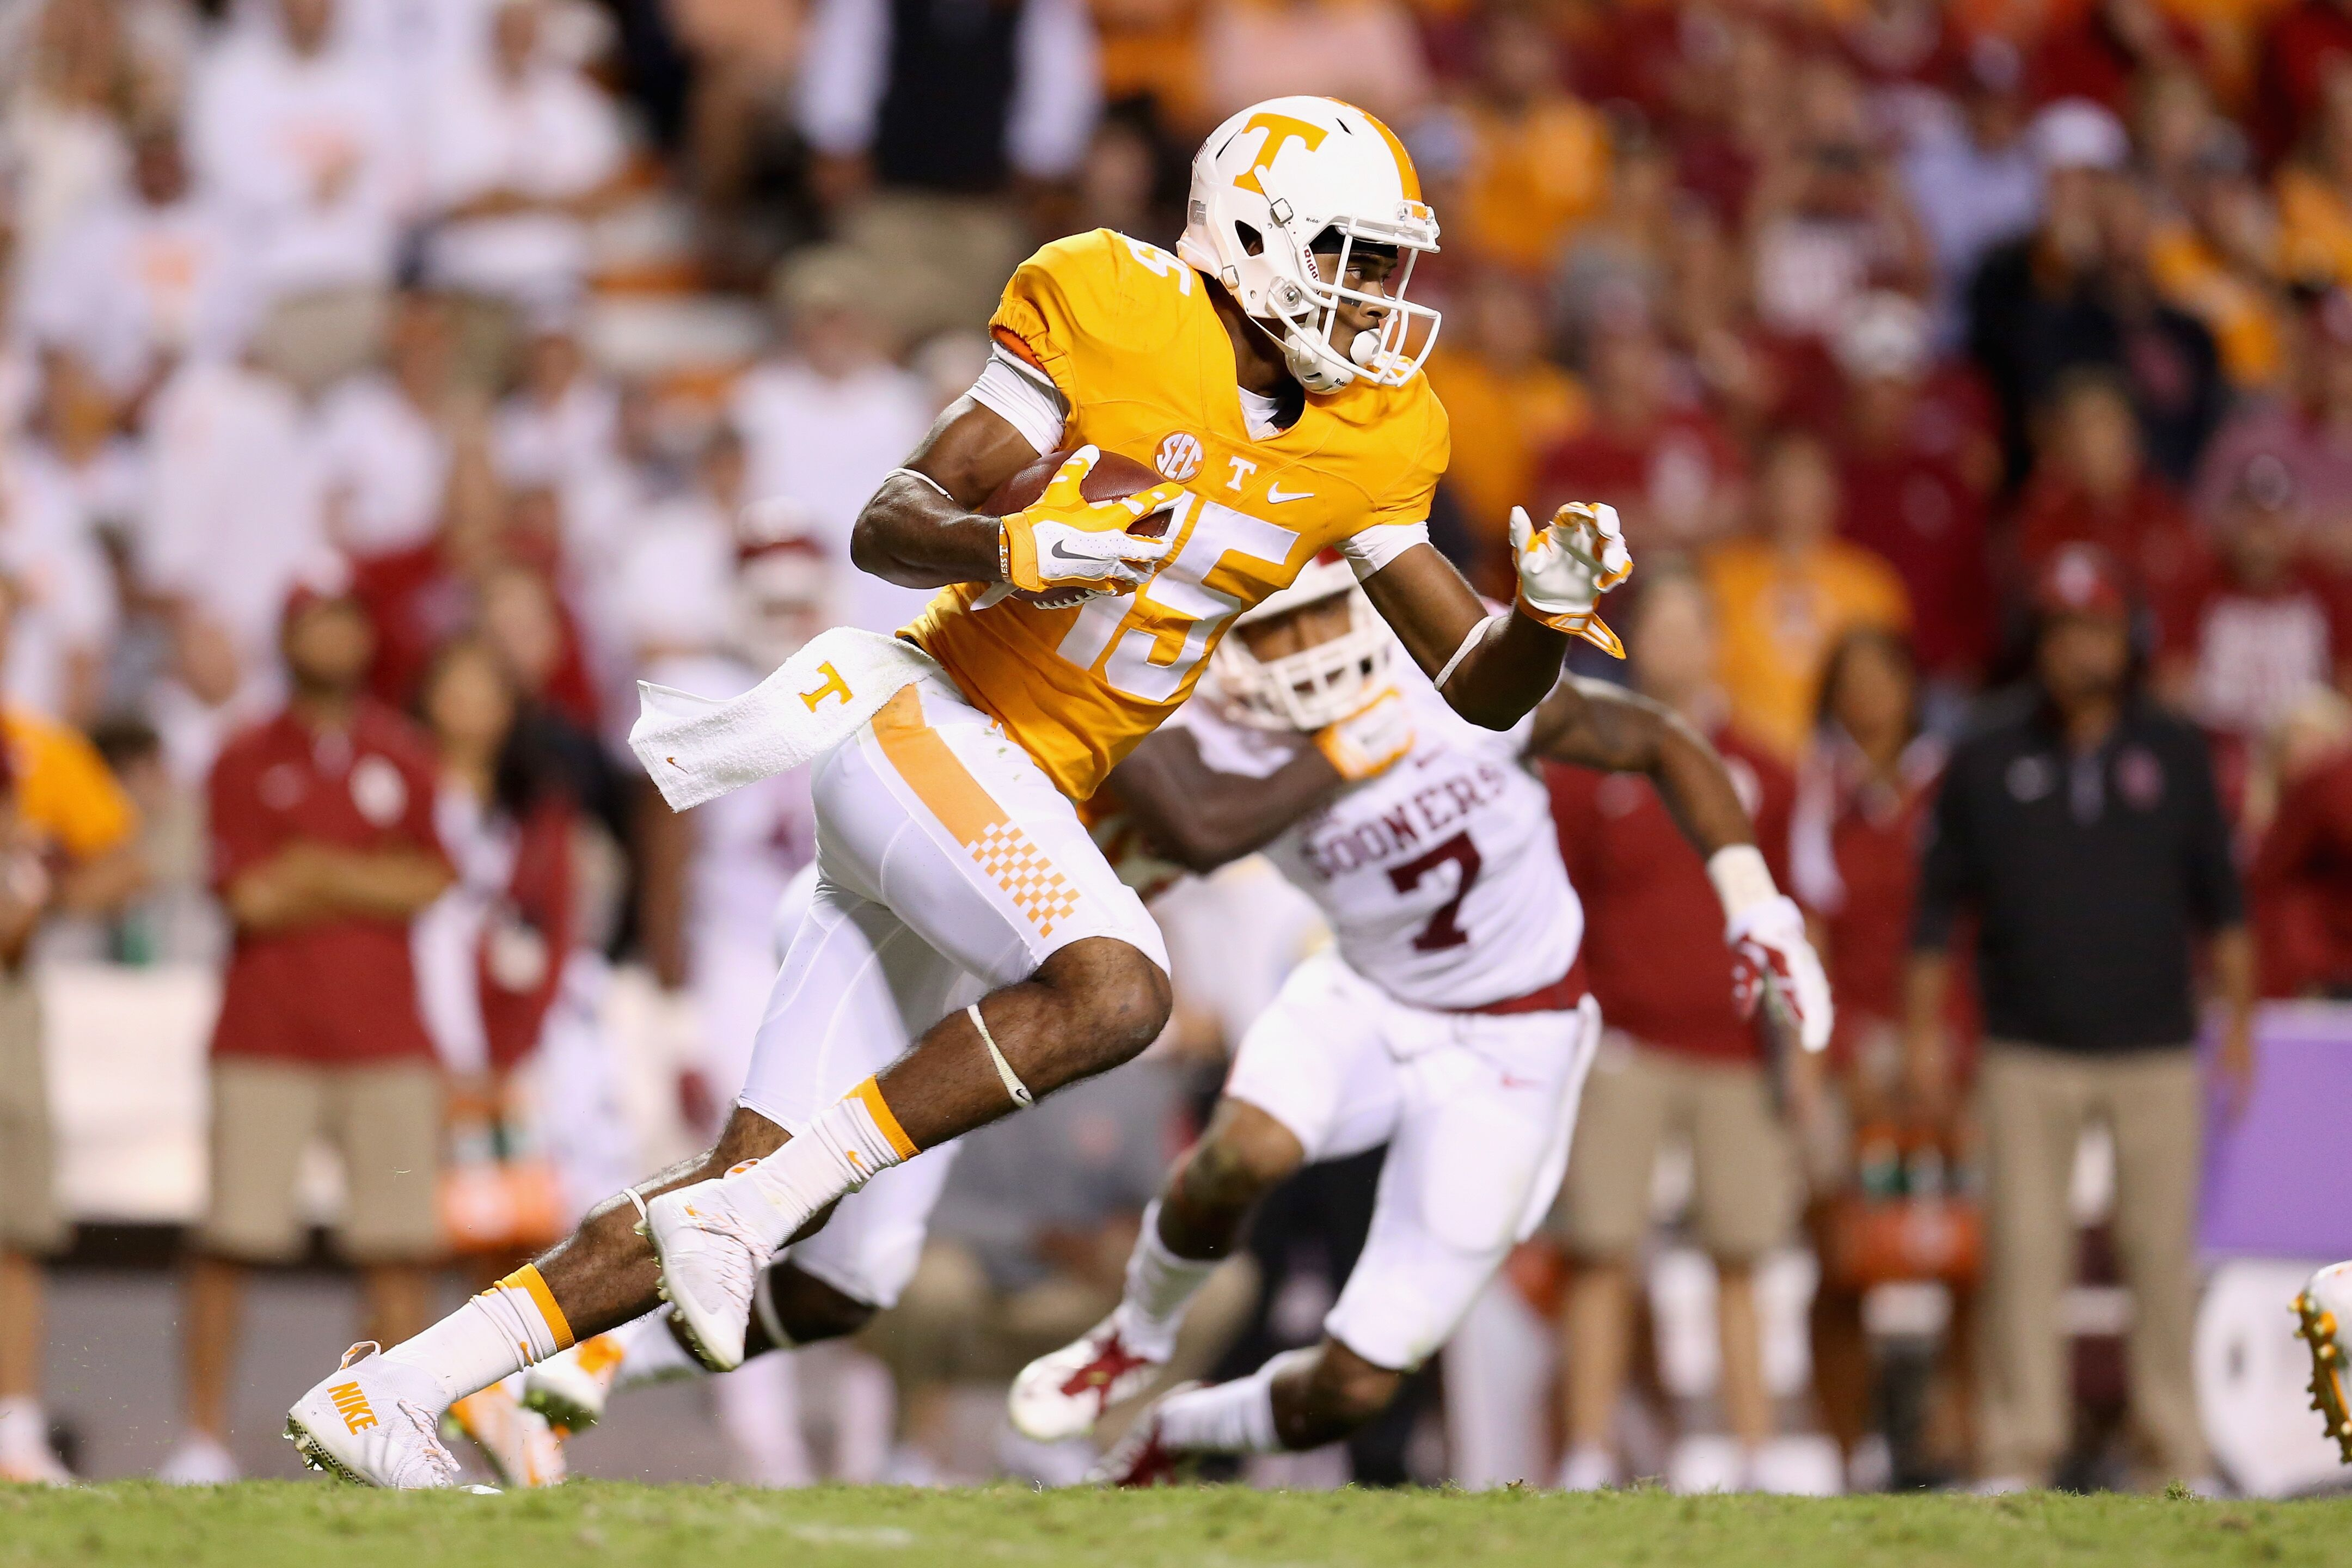 The SEC makes a terrible decision to suspend Jauan Jennings